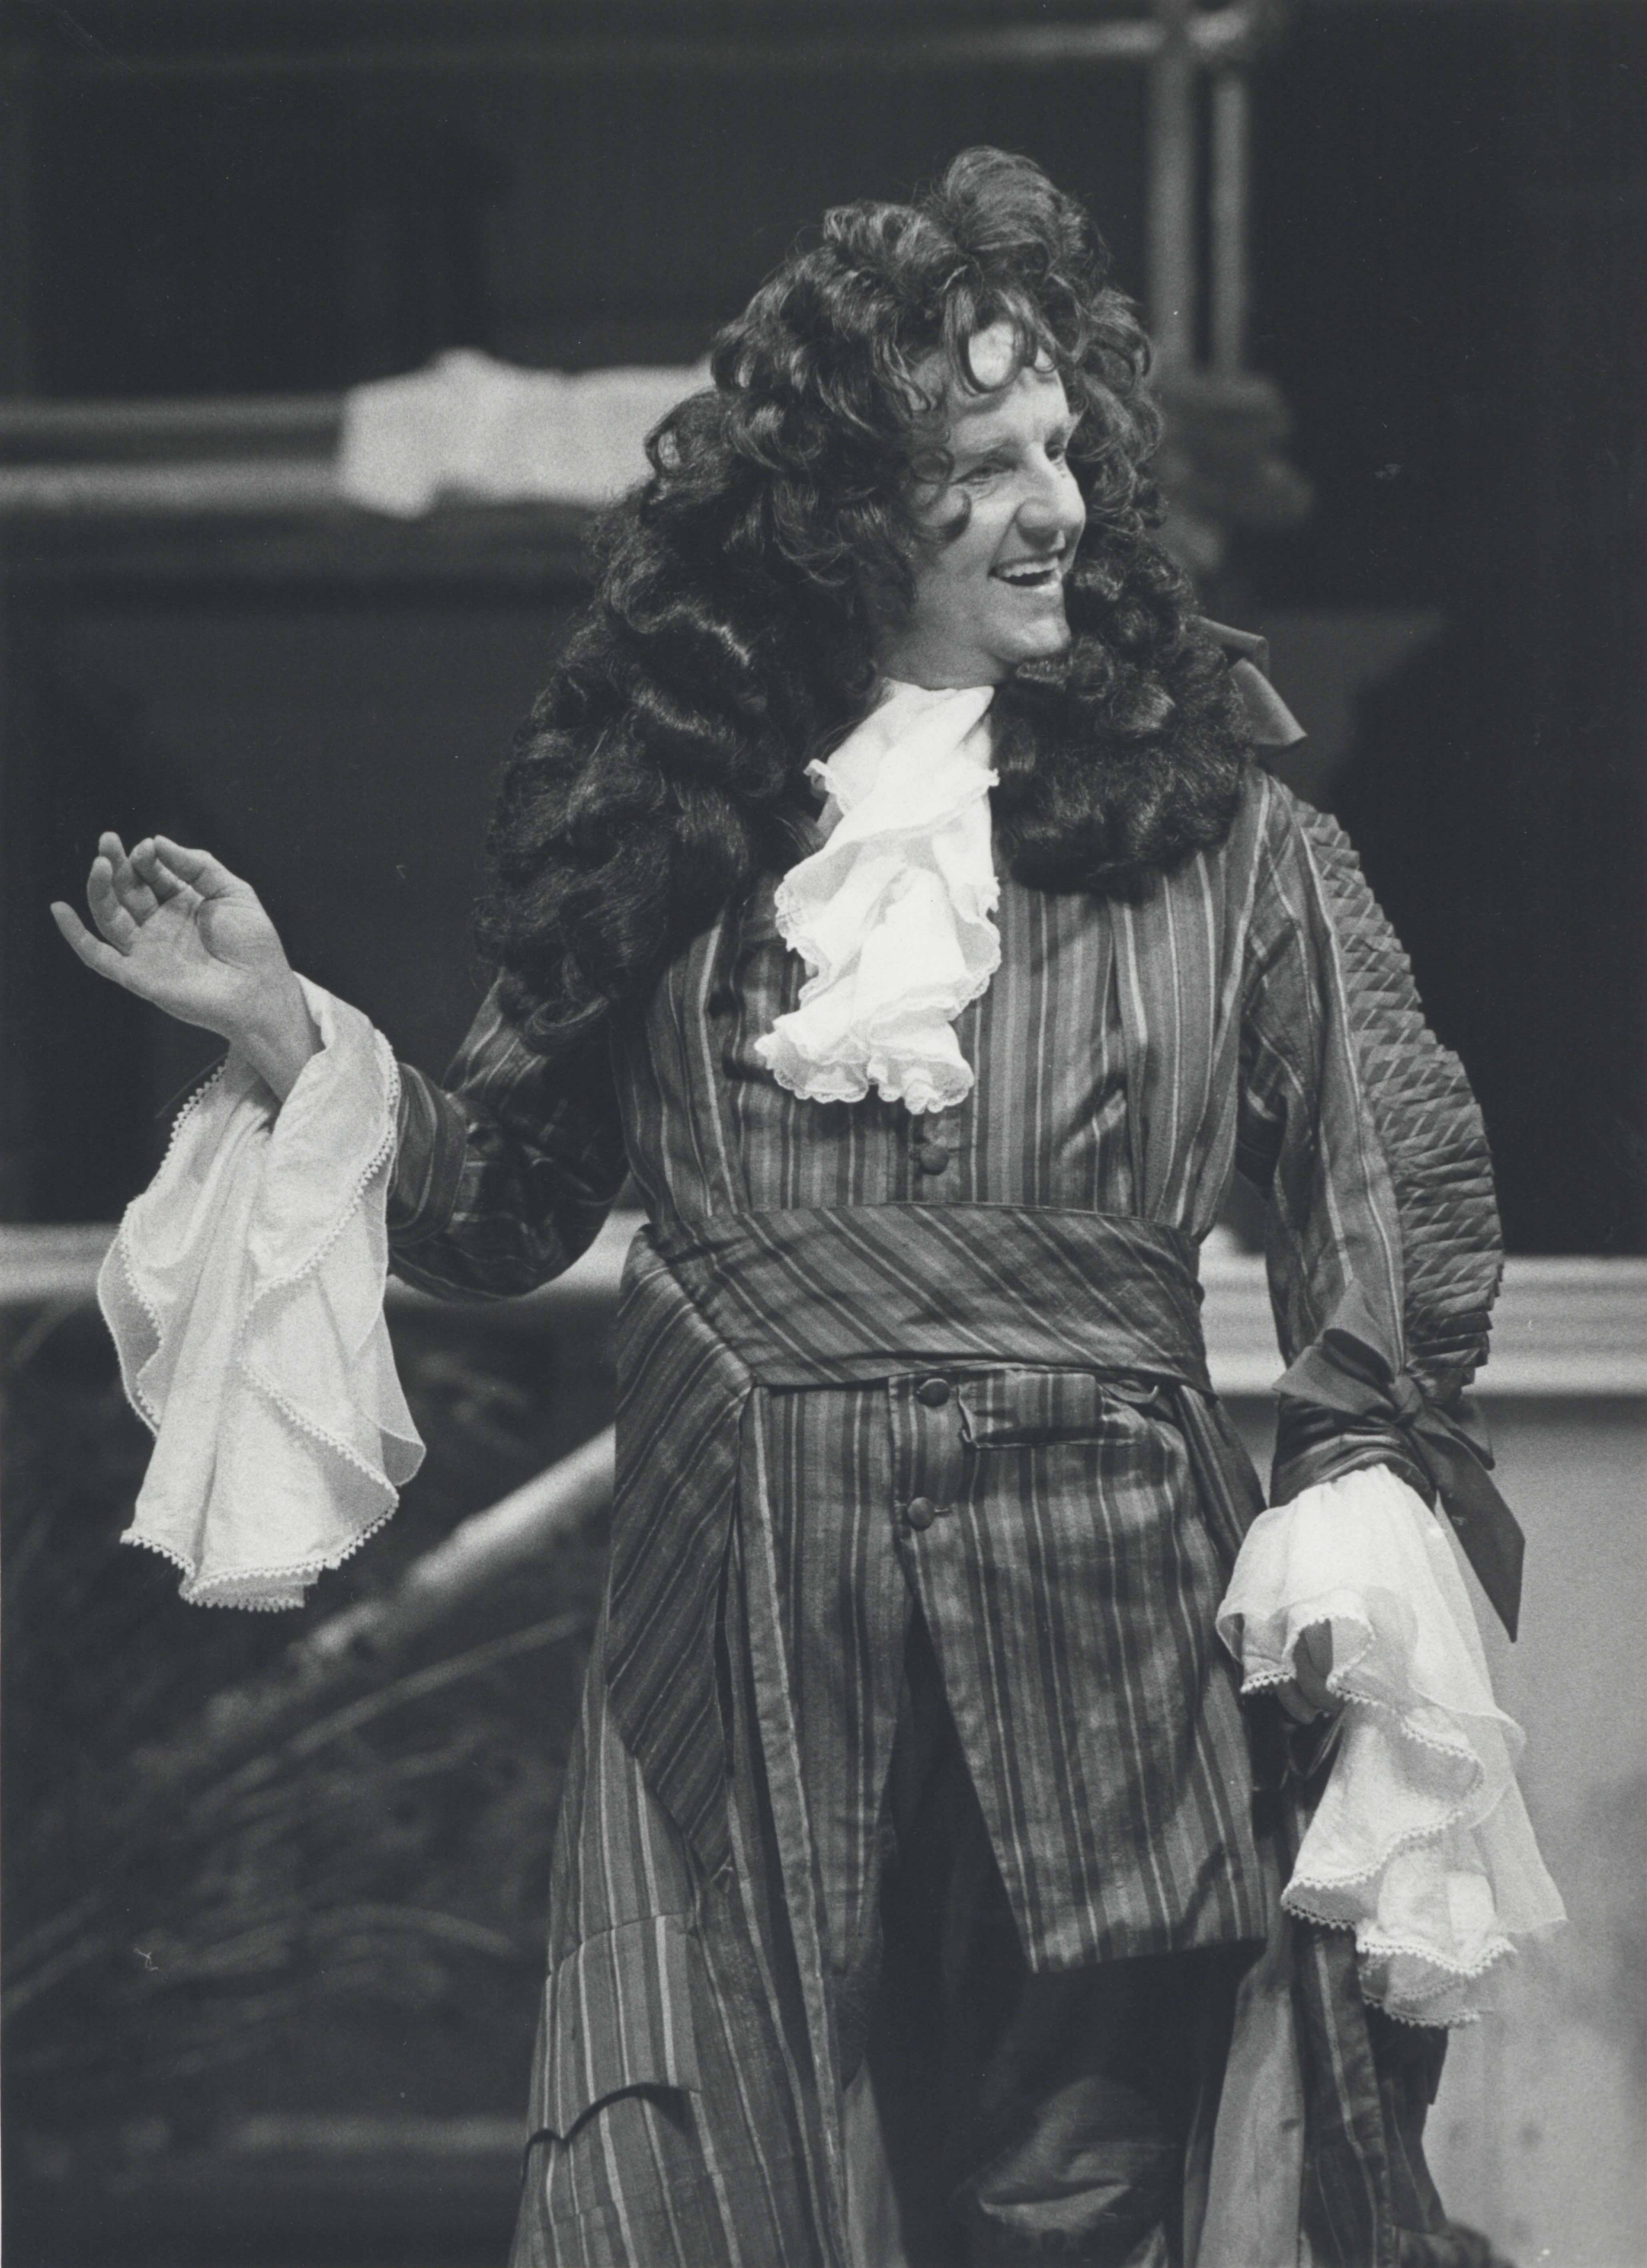 Production photograph The Relapse - 01 of 02 - Richard Briers - Photographer unknown - 1986 - Box 70 H25.5xW20.3cm